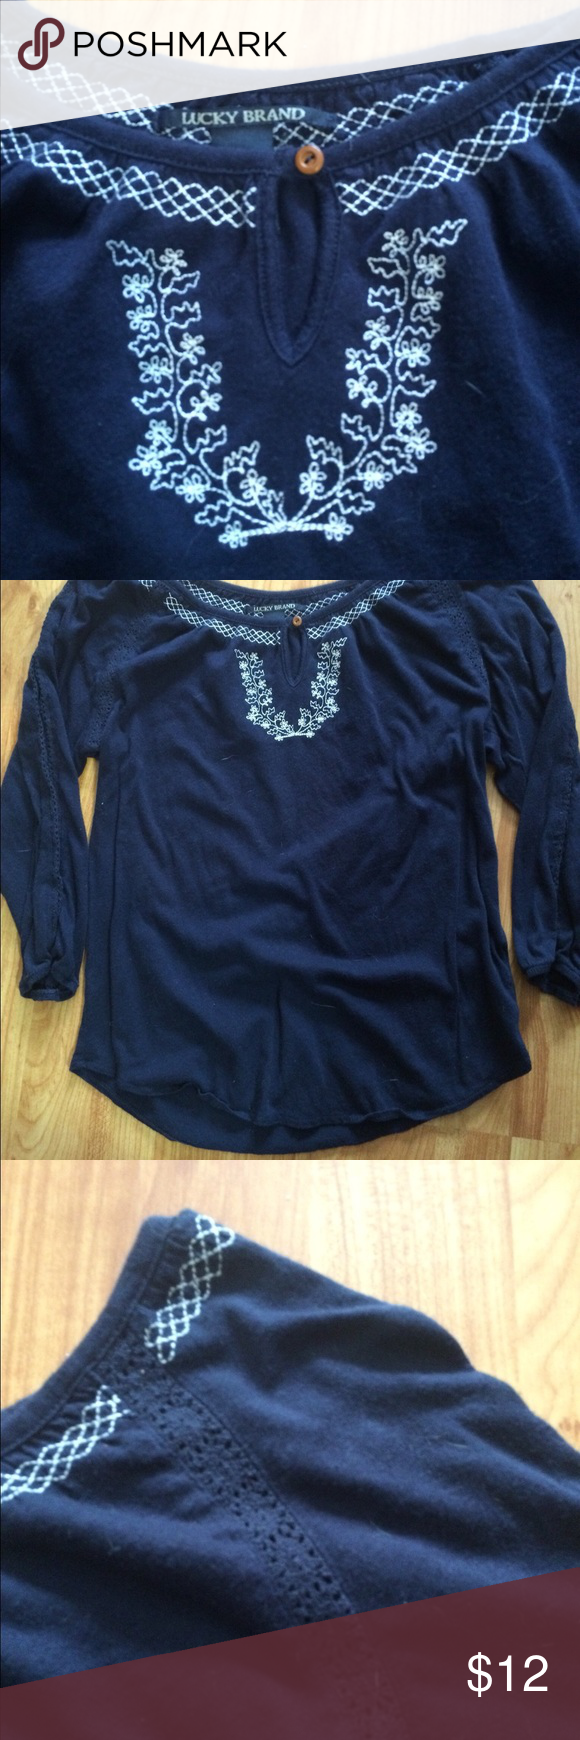 Lucky Brand Boho Top Lightweight boho top, navy blue with white embroidery flowers. Lucky Brand Tops